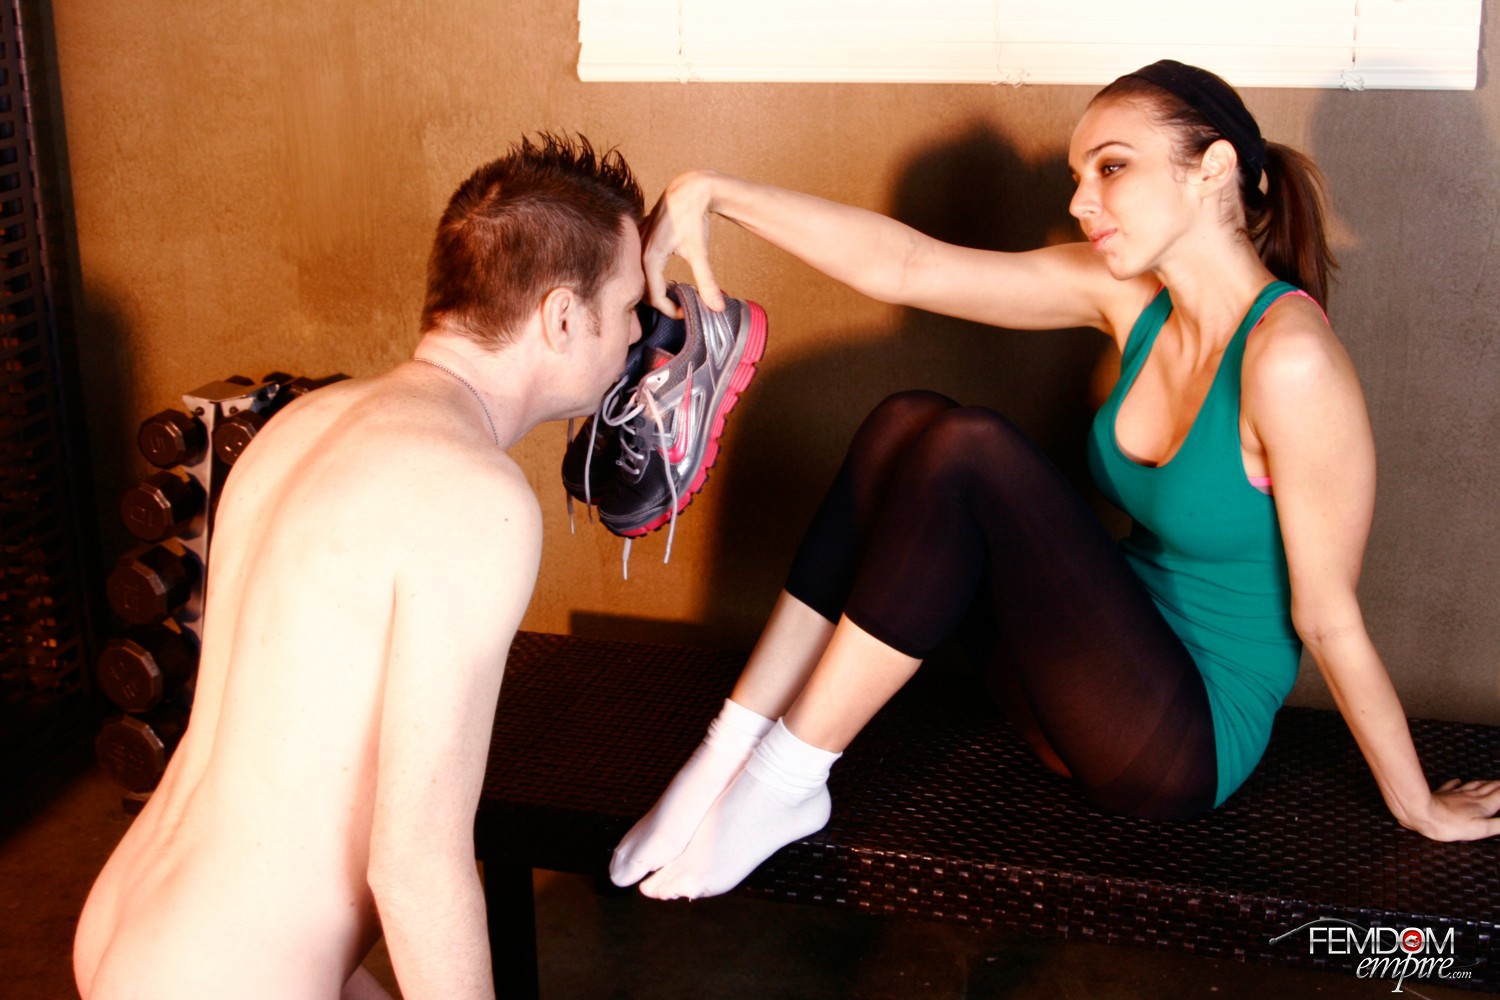 Domina Tiffany likes making her marionette worship her odorous and sweat-soaked workout boots, socks, and soles.